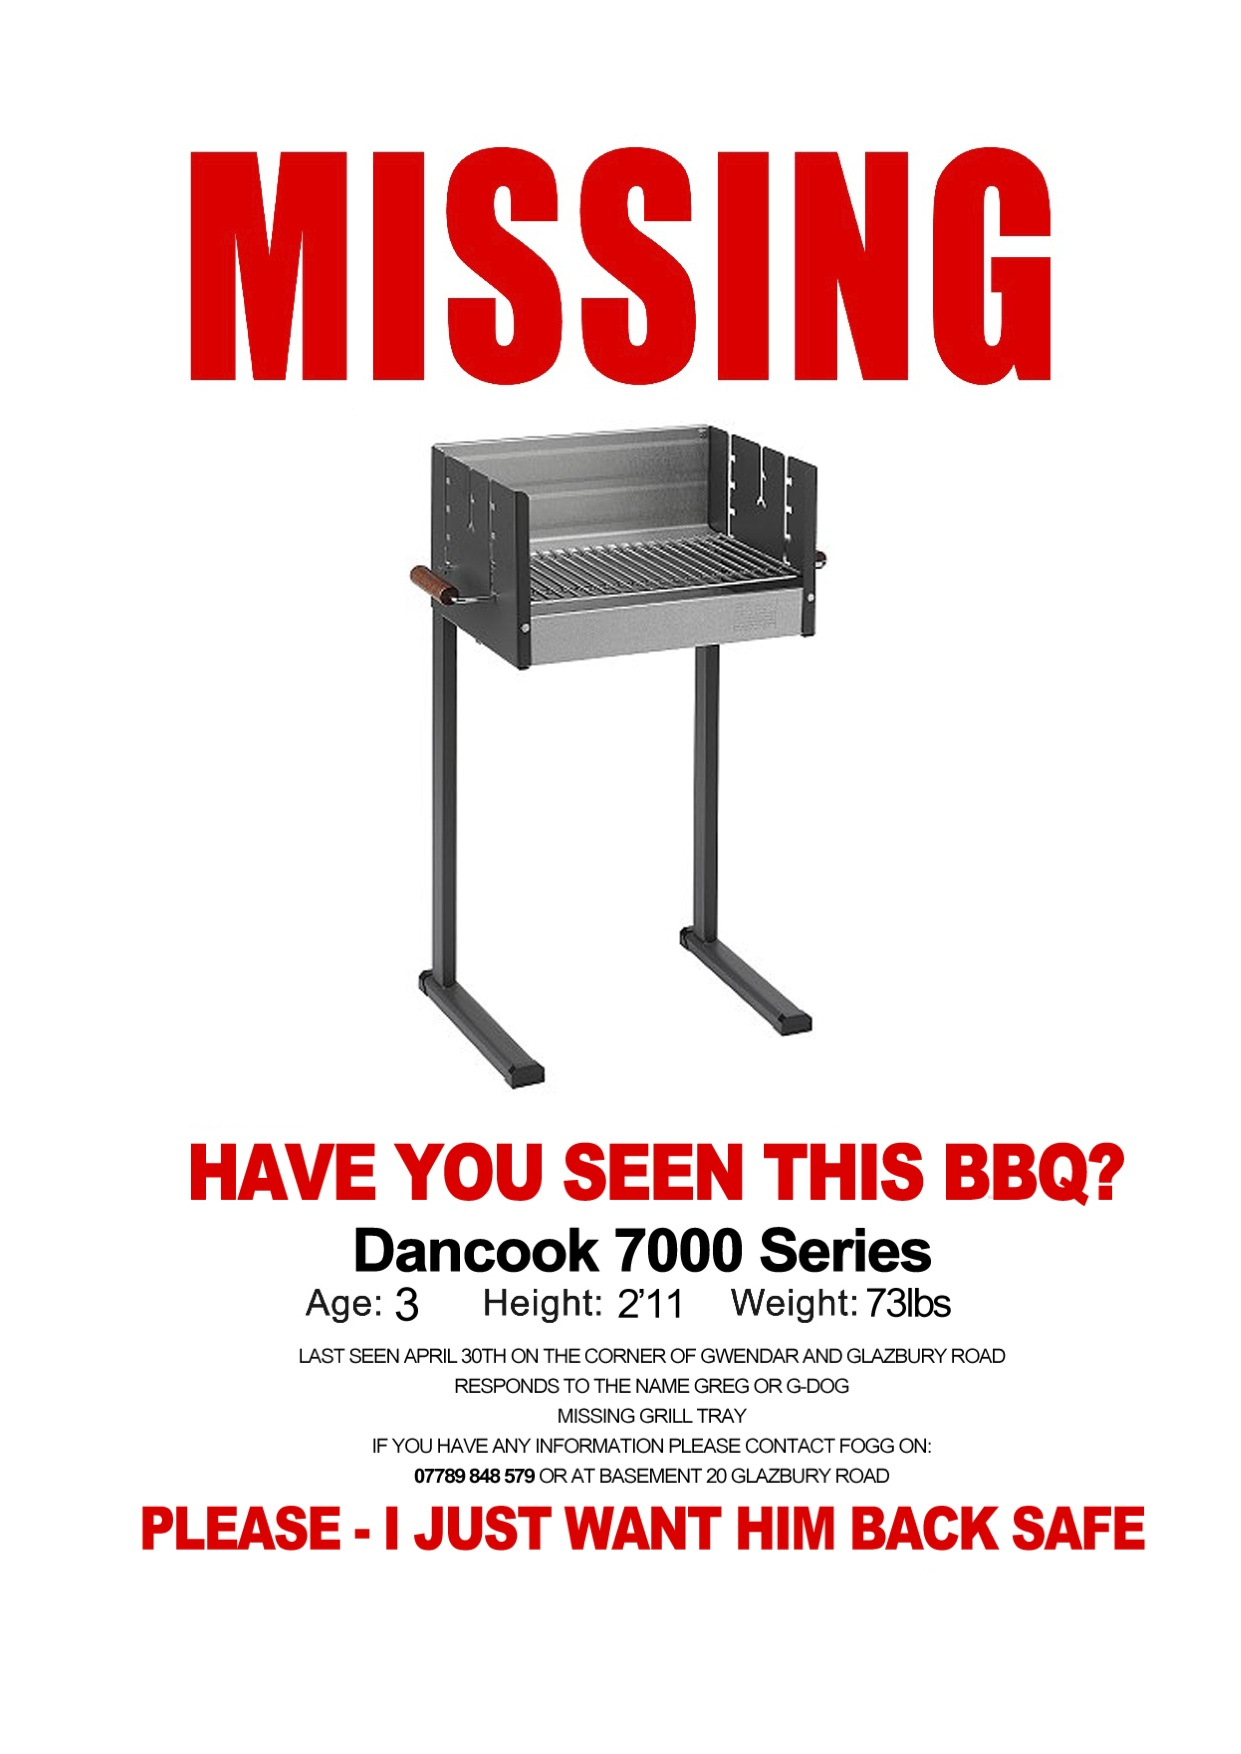 bbq_missing_poster